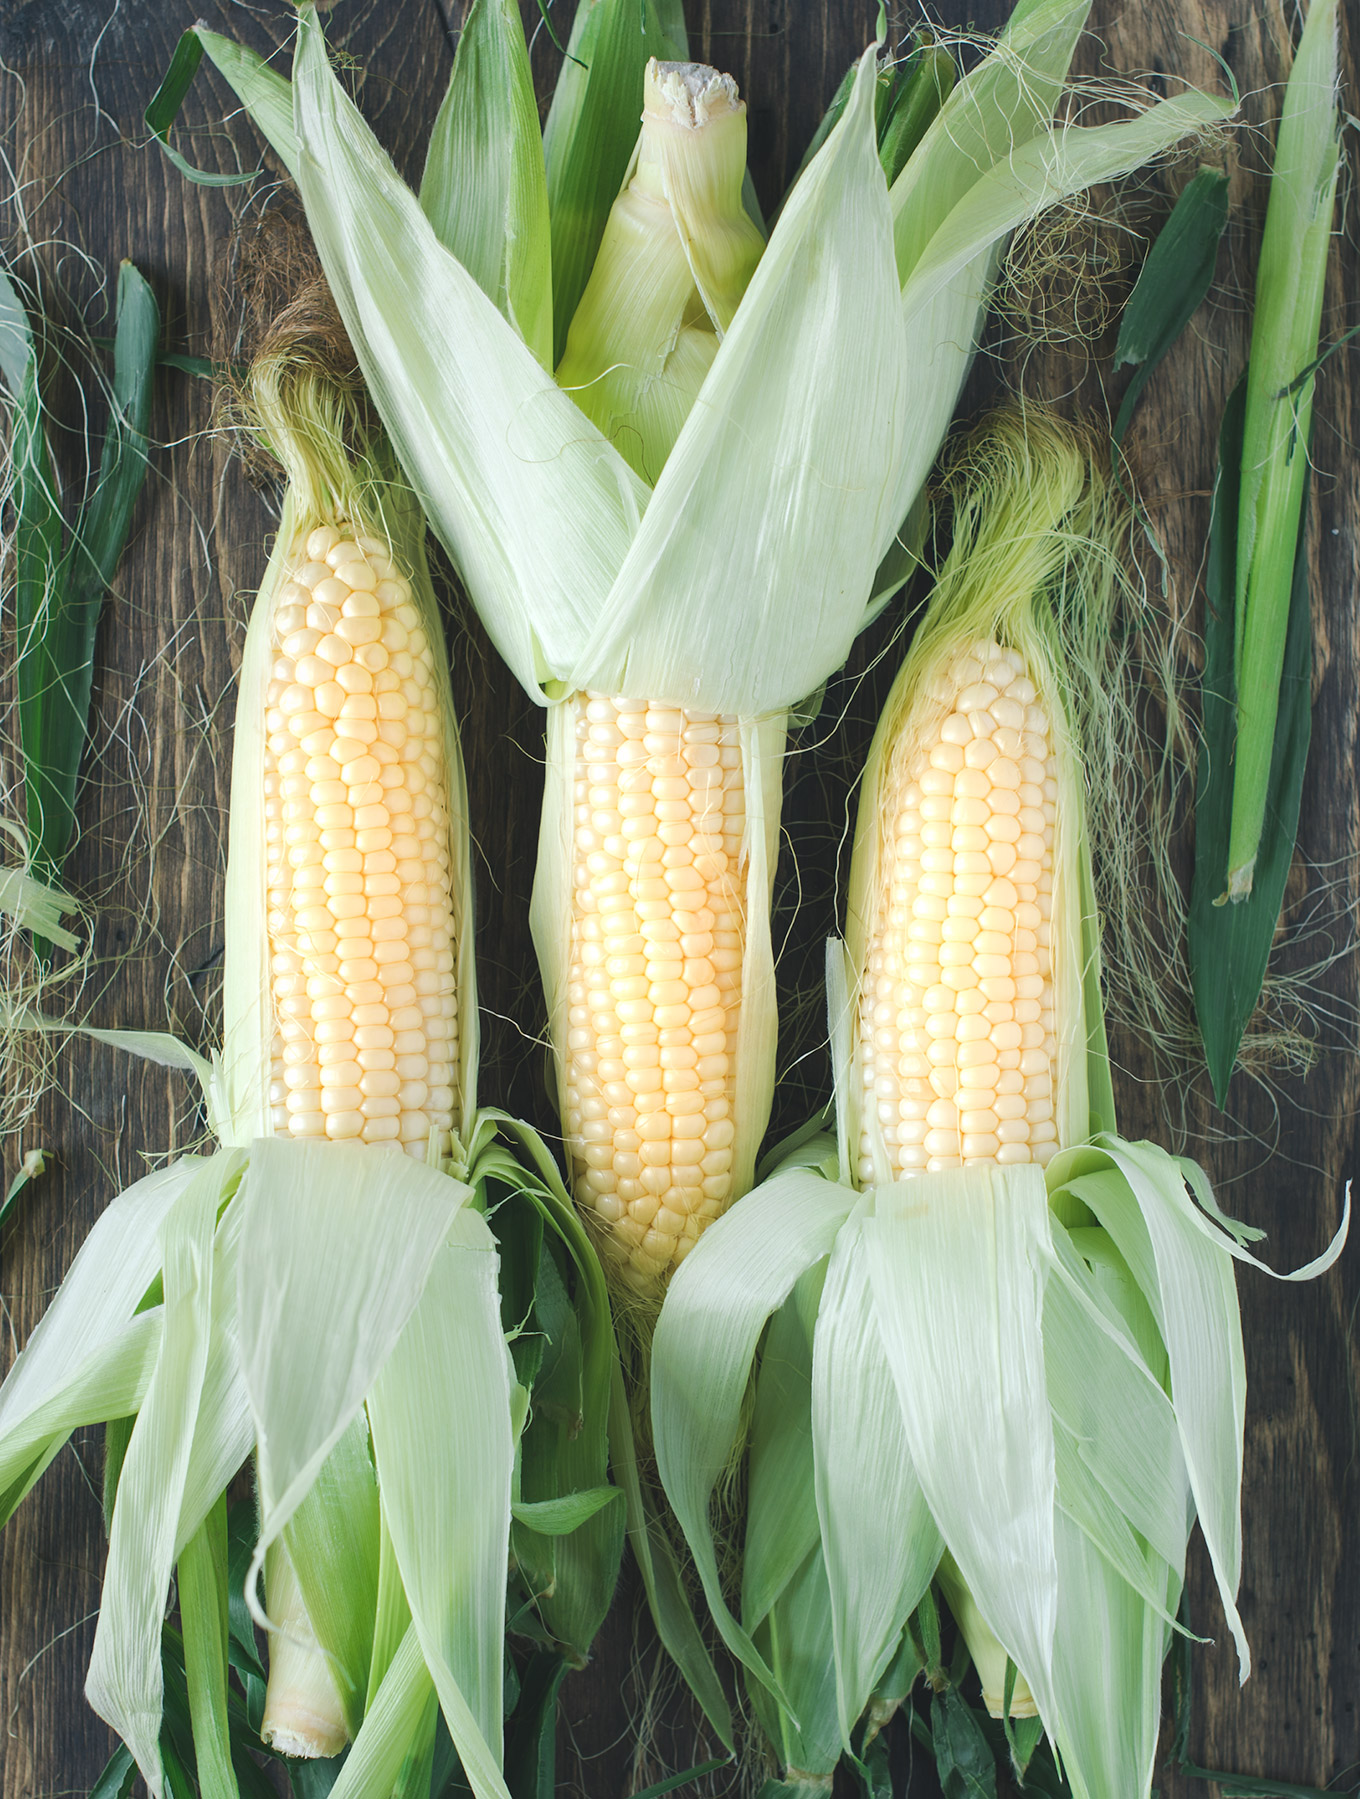 Stalks of fresh corn